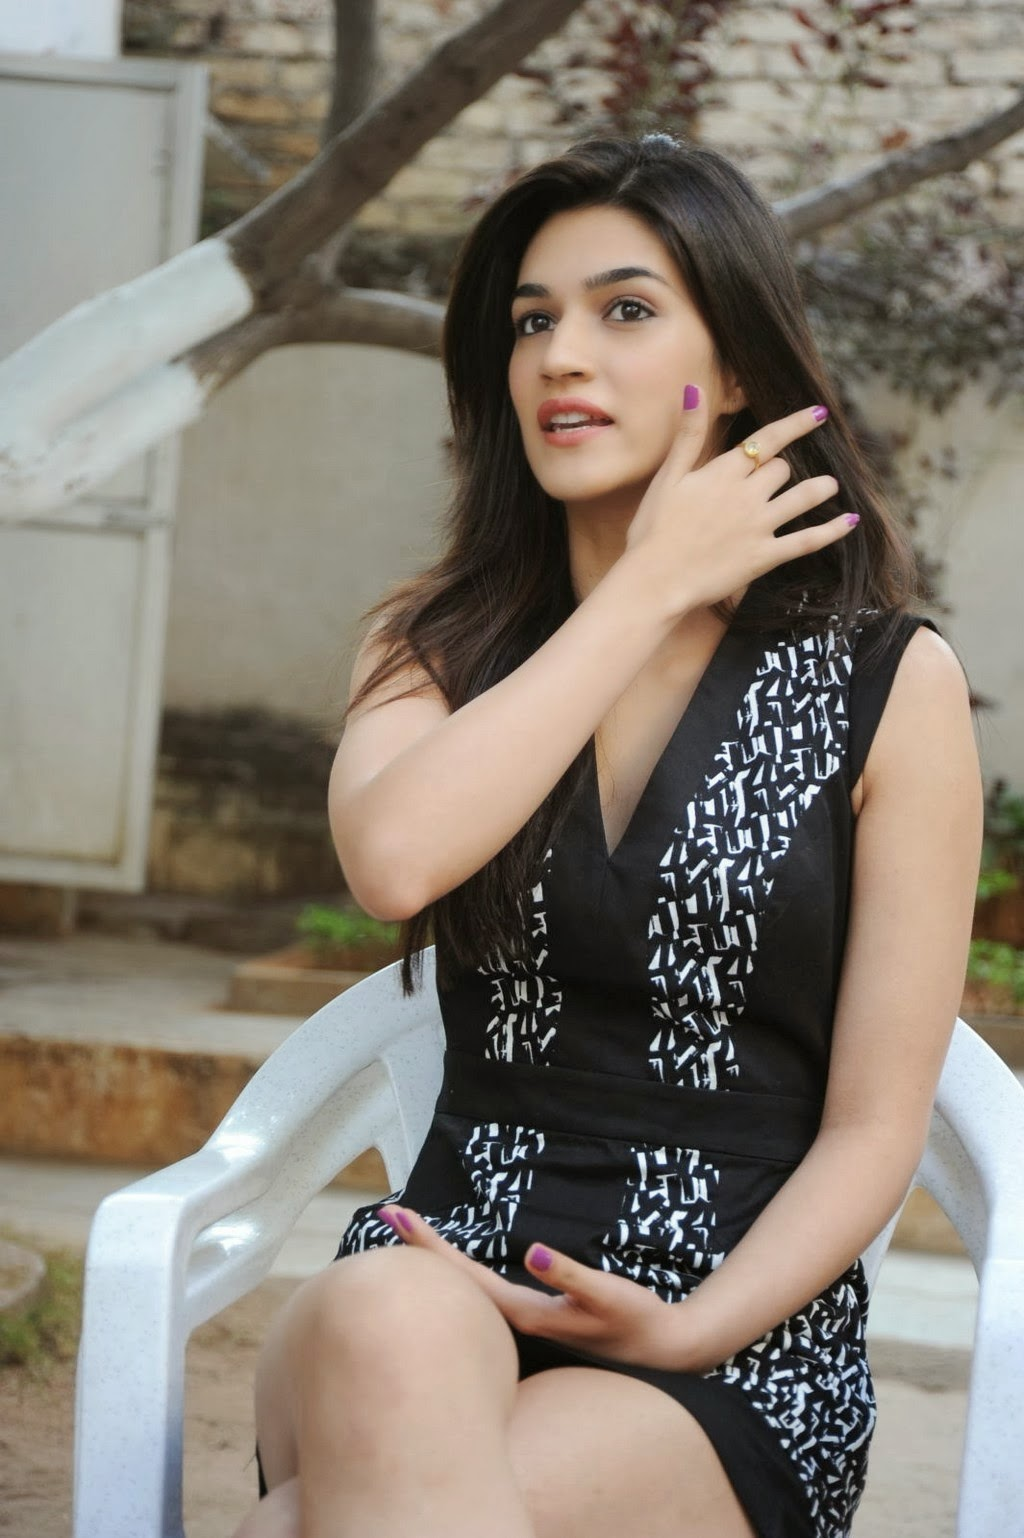 high quality bollywood celebrity pictures: kriti sanon sexiest legs